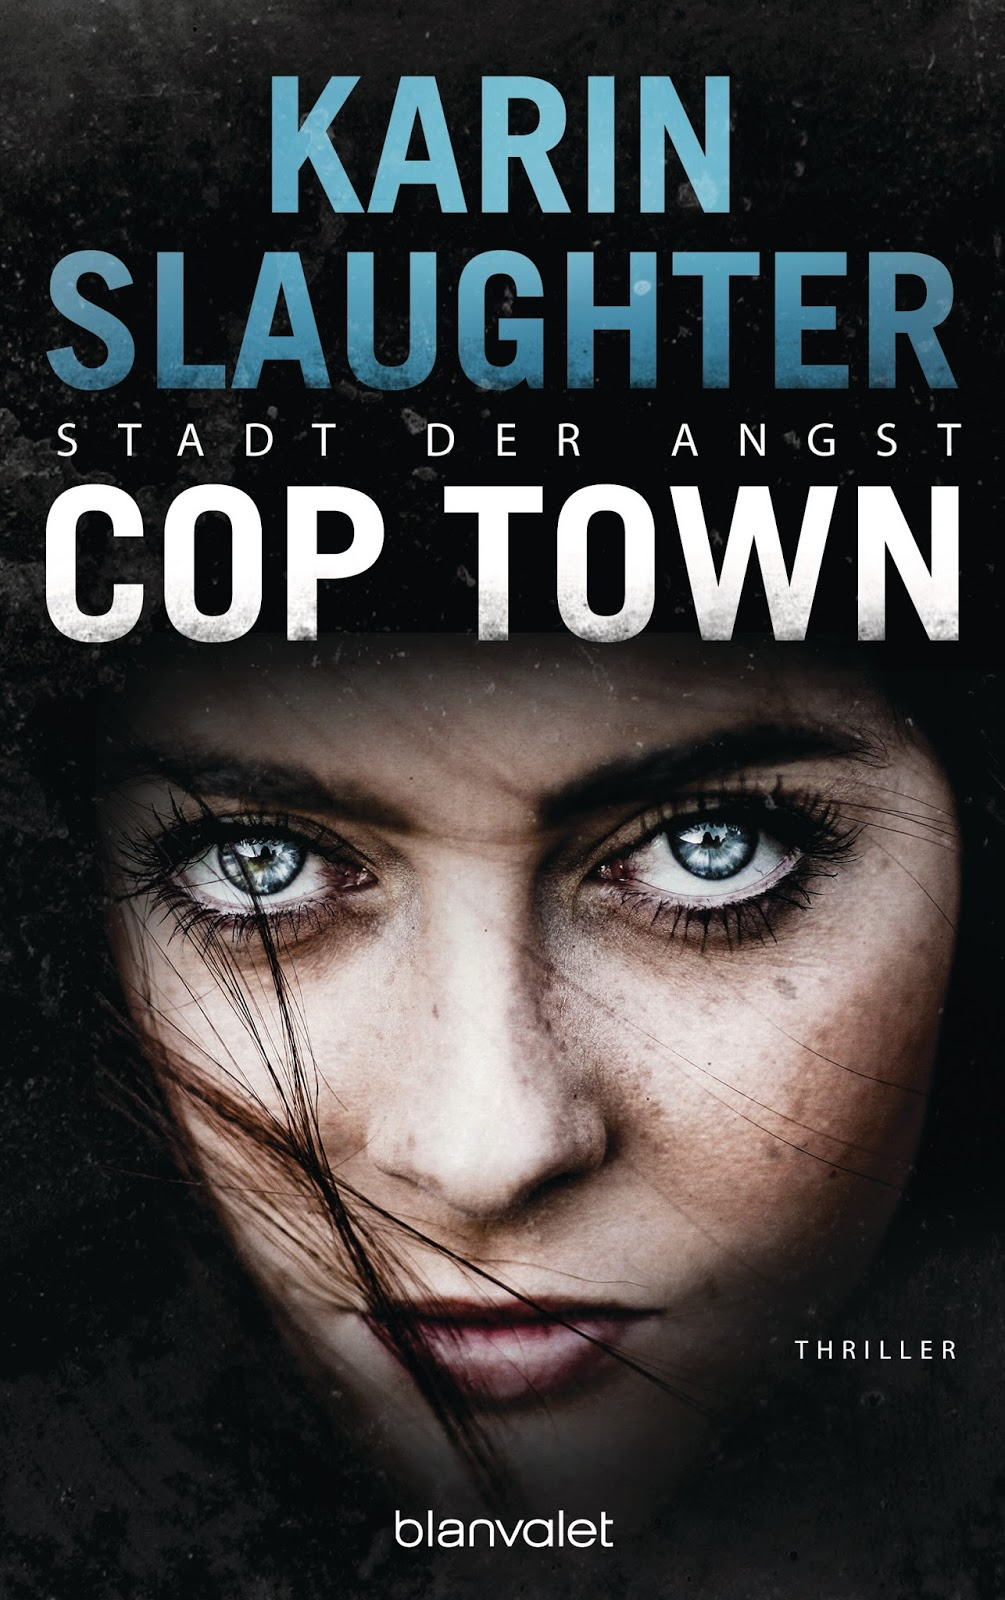 http://nothingbutn9erz.blogspot.co.at/2015/11/cop-town-karin-slaughter-blanvalet-rezension.html